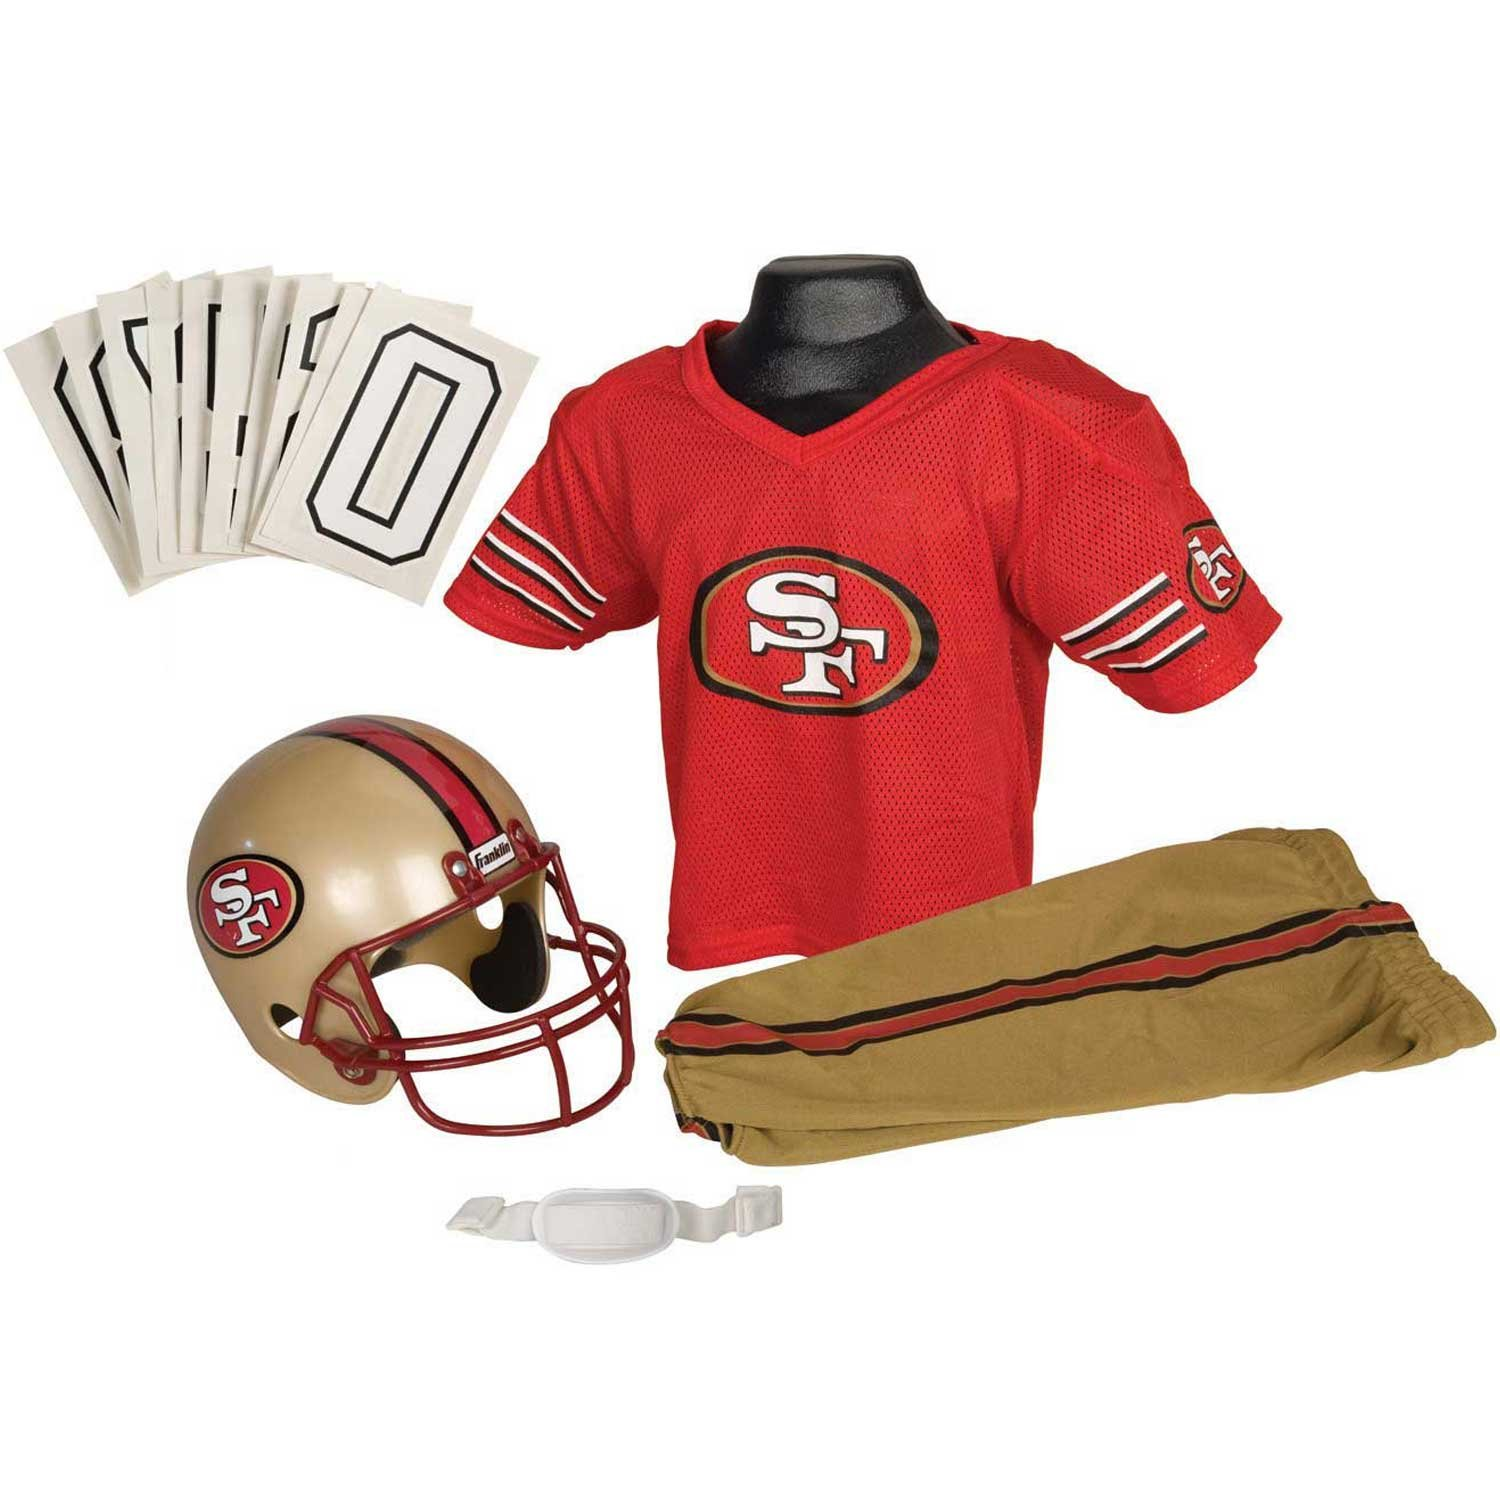 92ee5ef5bbb Deluxe Youth Uniform Set · Youth Helmet and Jersey Set · San Francisco 49ers  Uniform Costume · Colin Kaepernick White Jersey · Colin Kaepernick Scarlet  ...